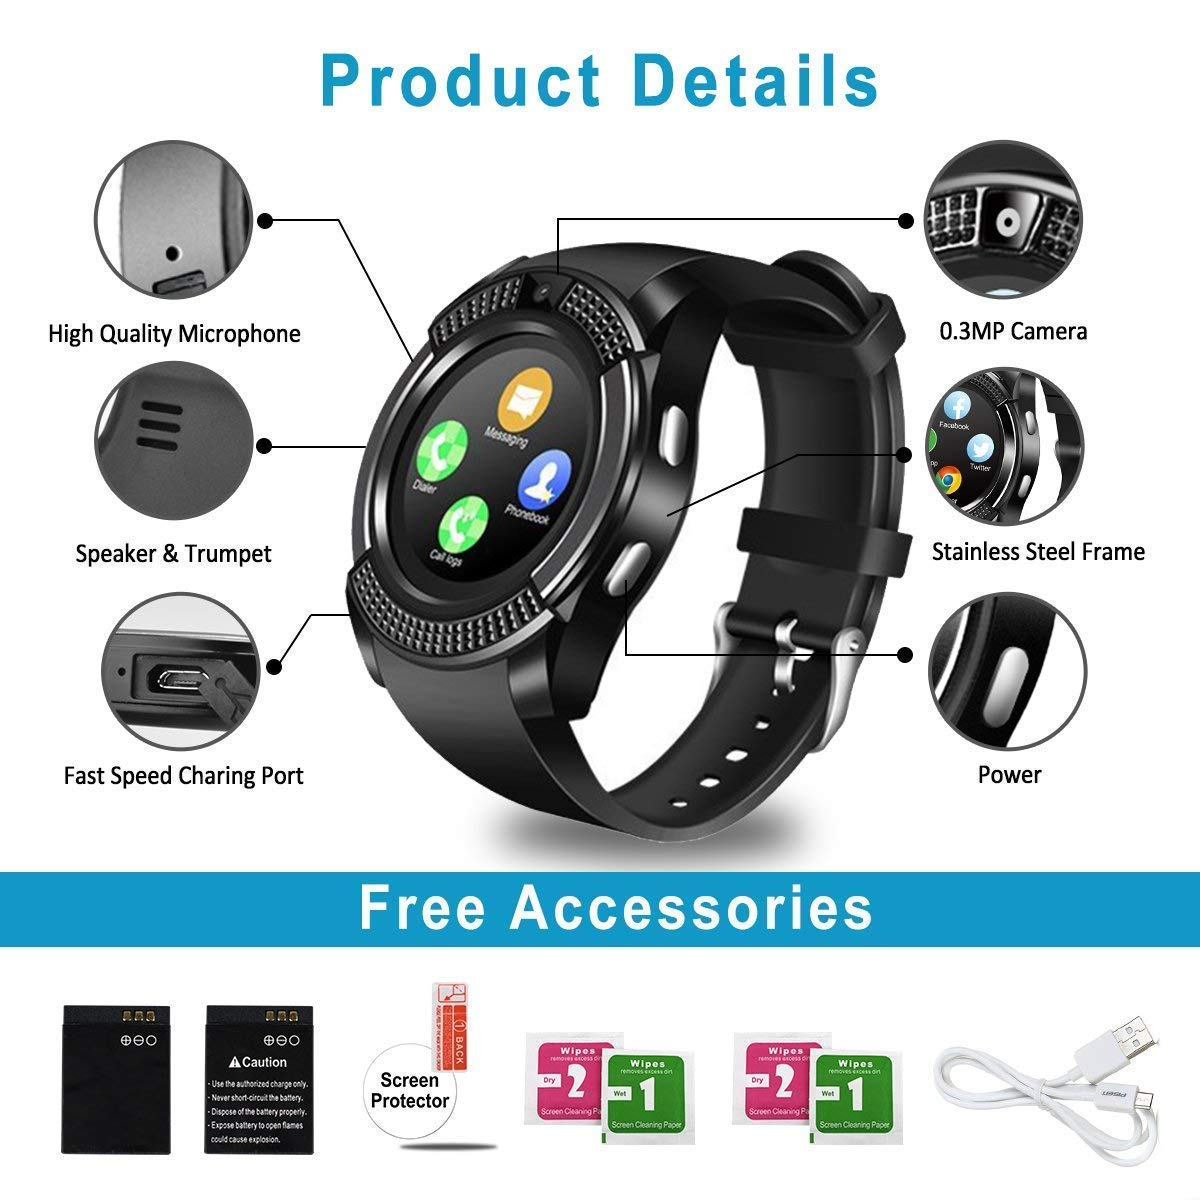 Smart Watch,Bluetooth Smartwatch Touch Screen Wrist Watch with Camera/SIM Card Slot,Waterproof Phone Smart Watch Sports Fitness Tracker Compatible Android Phones Black by Topffy (Image #6)